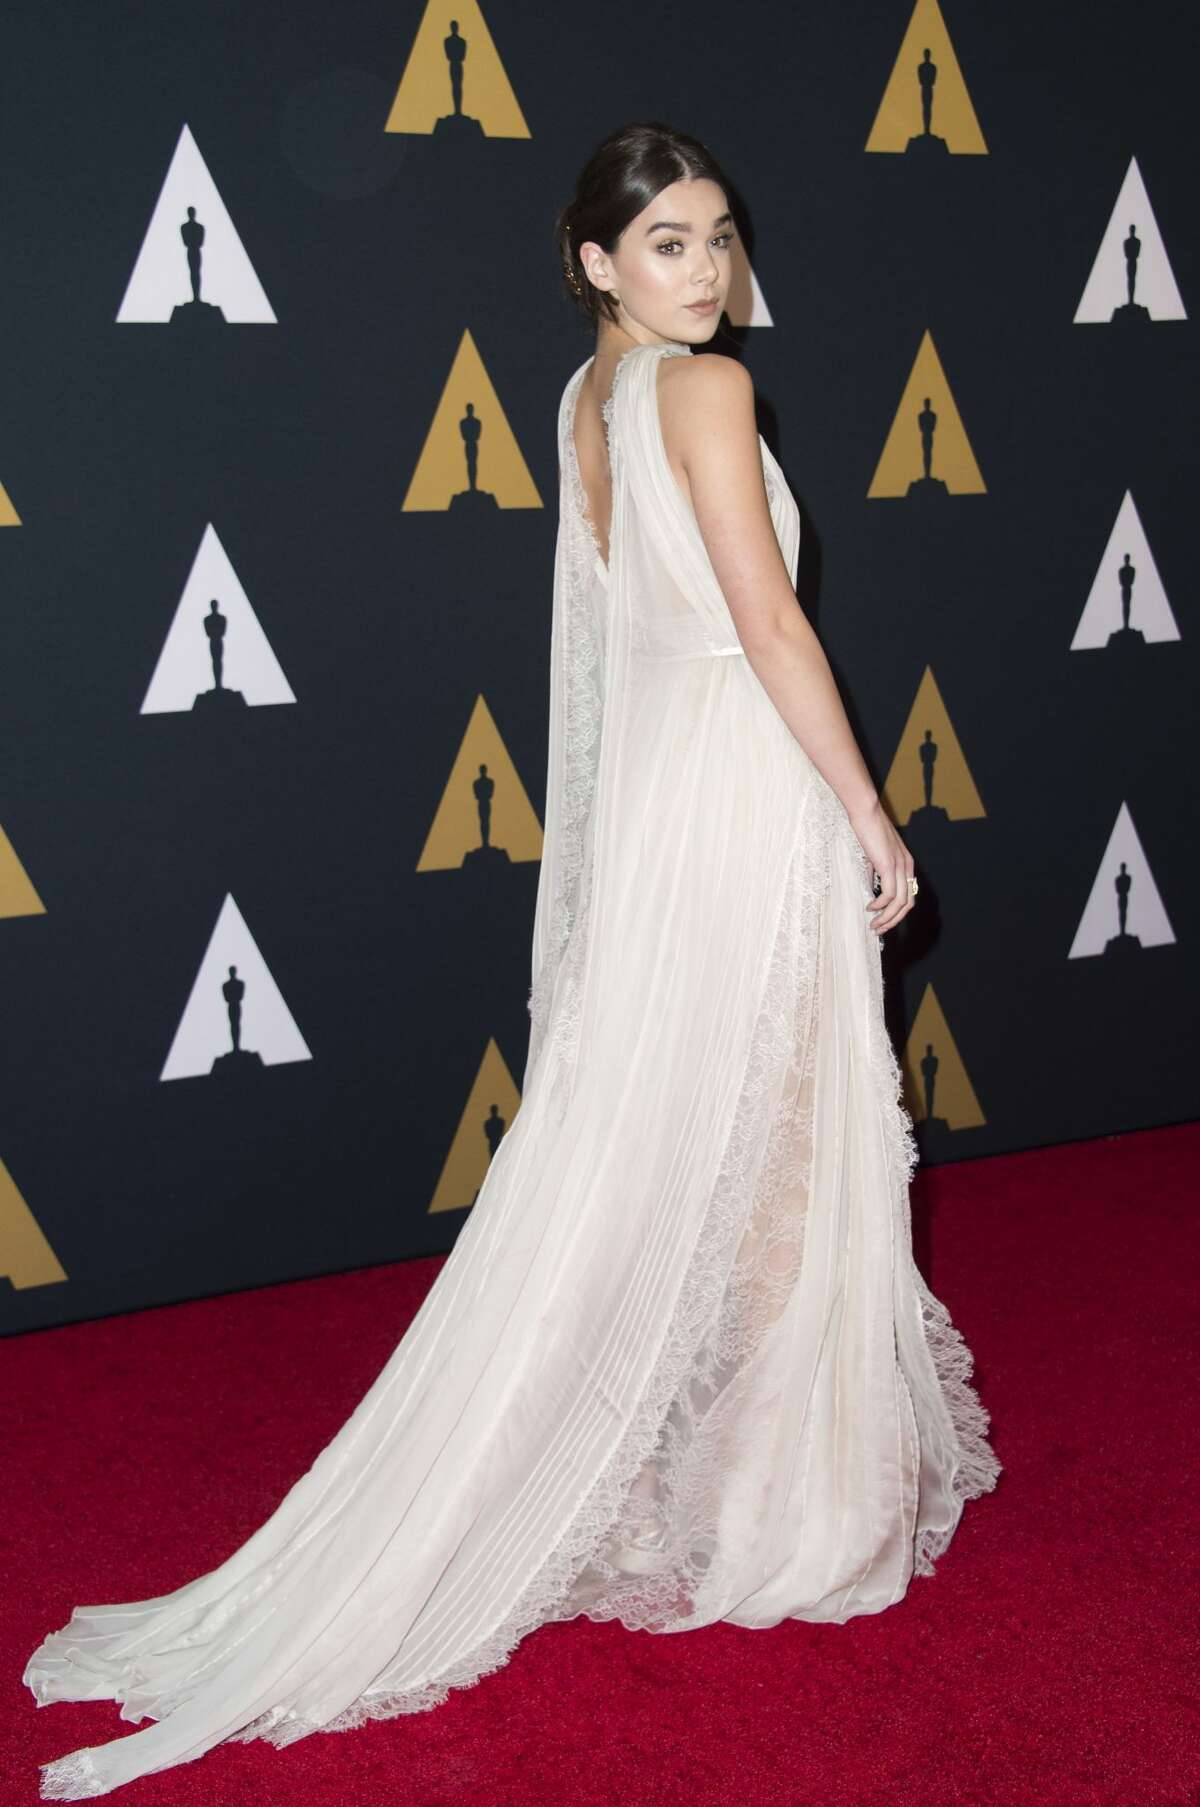 Actress Hailee Steinfield wears white with a fun and flirty lace draping.